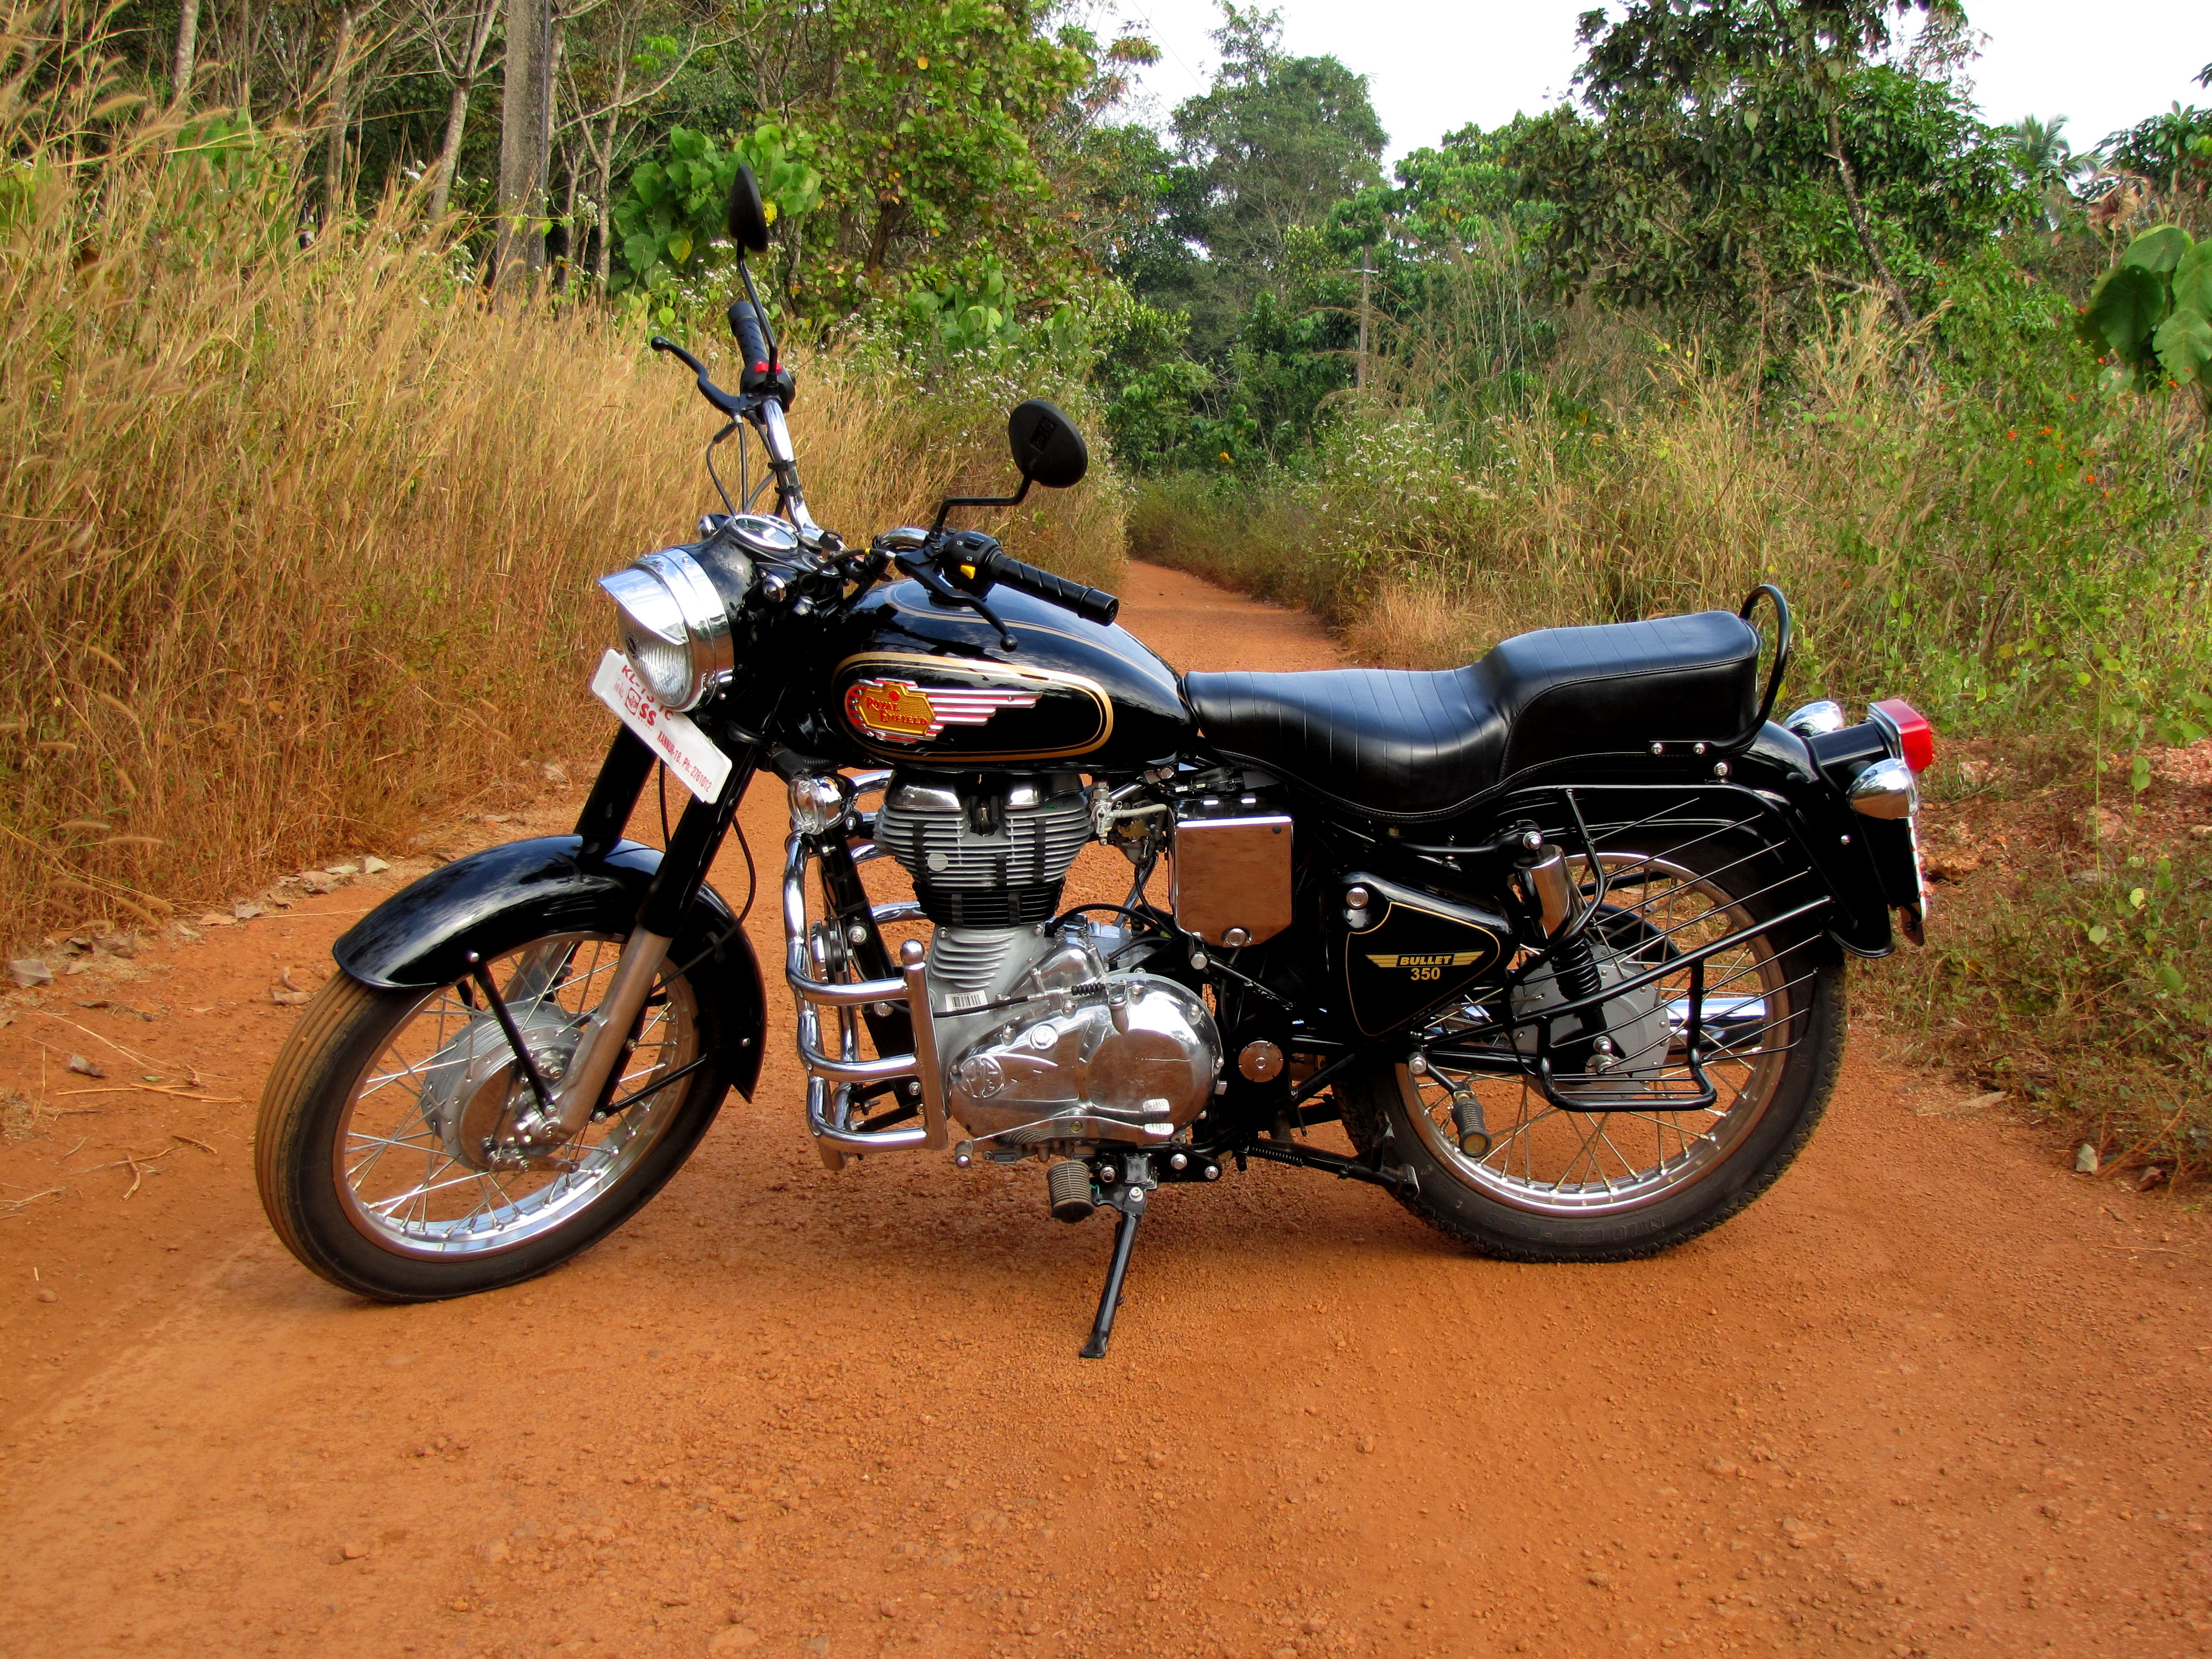 Royal Enfield Bullet 500 Army 2007 images #127482